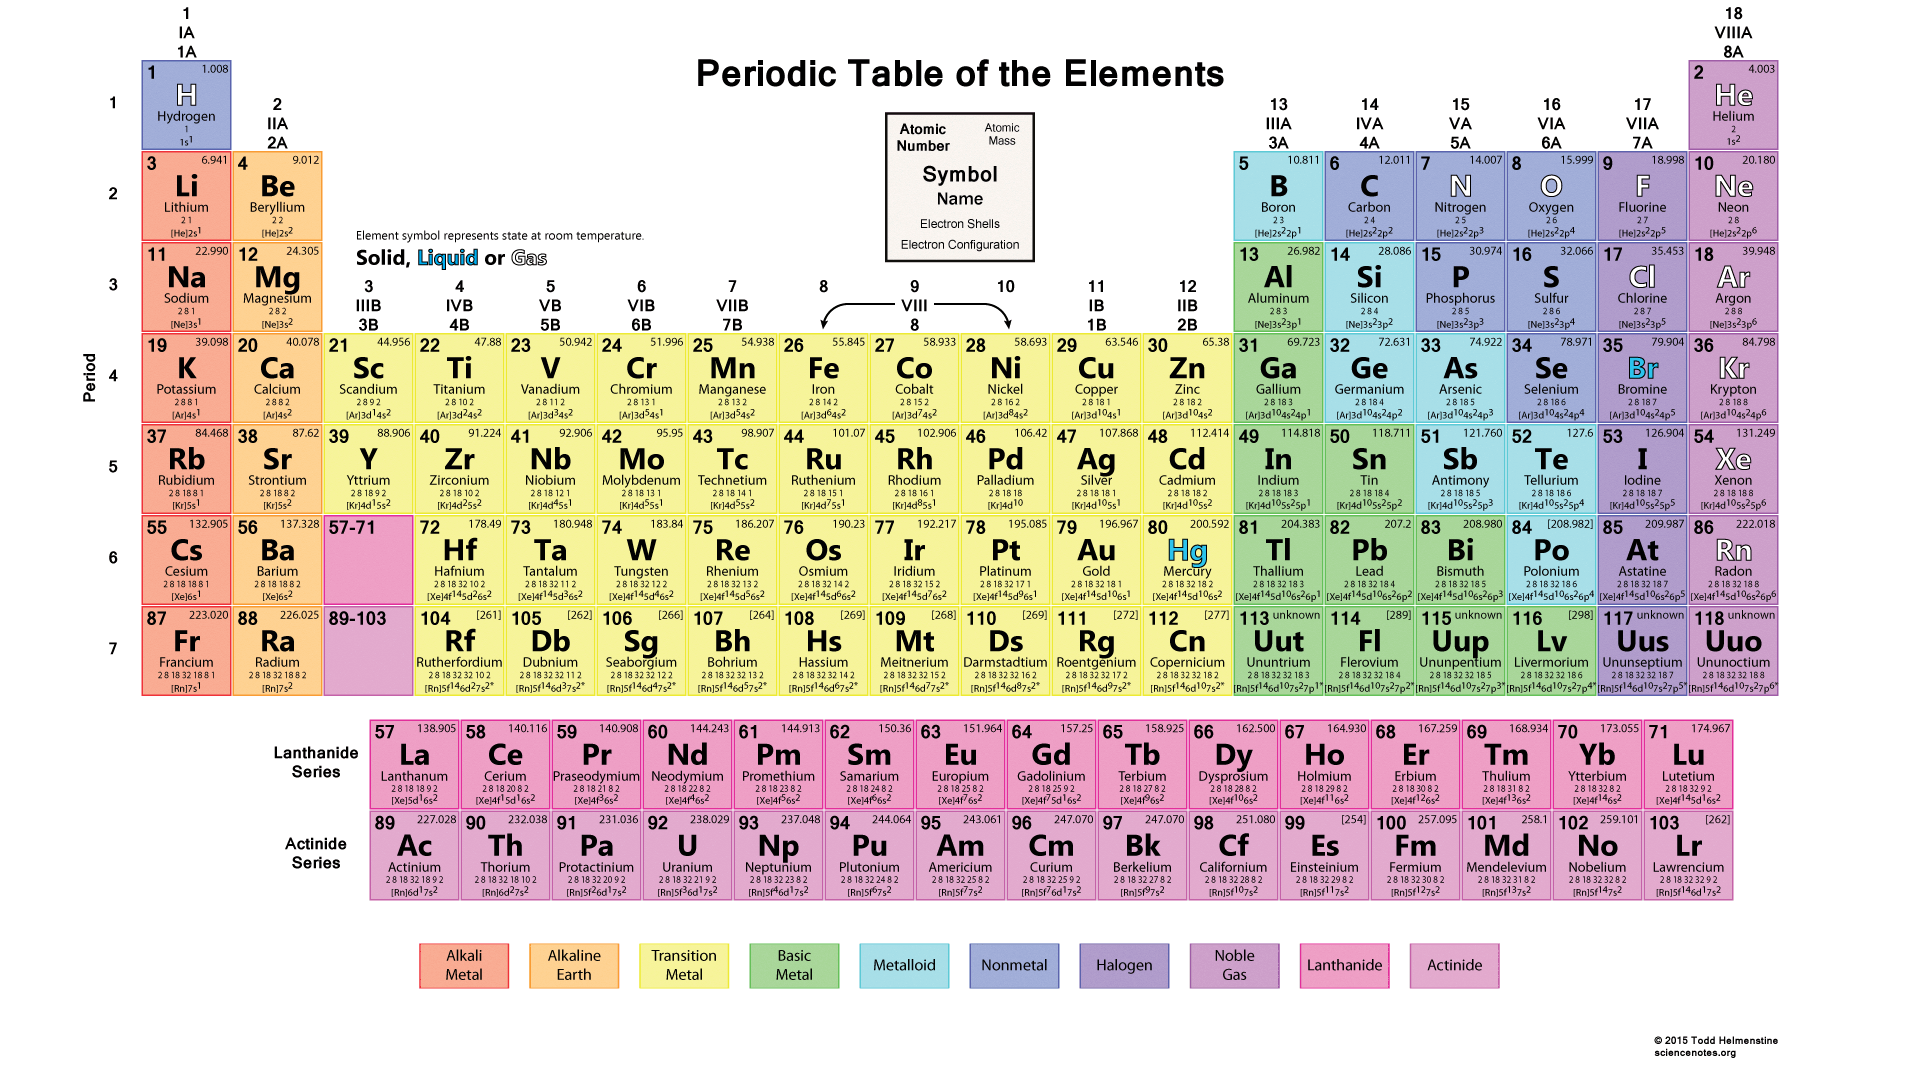 In what order are the elements of the periodic table arranged sciencenotes gamestrikefo Images